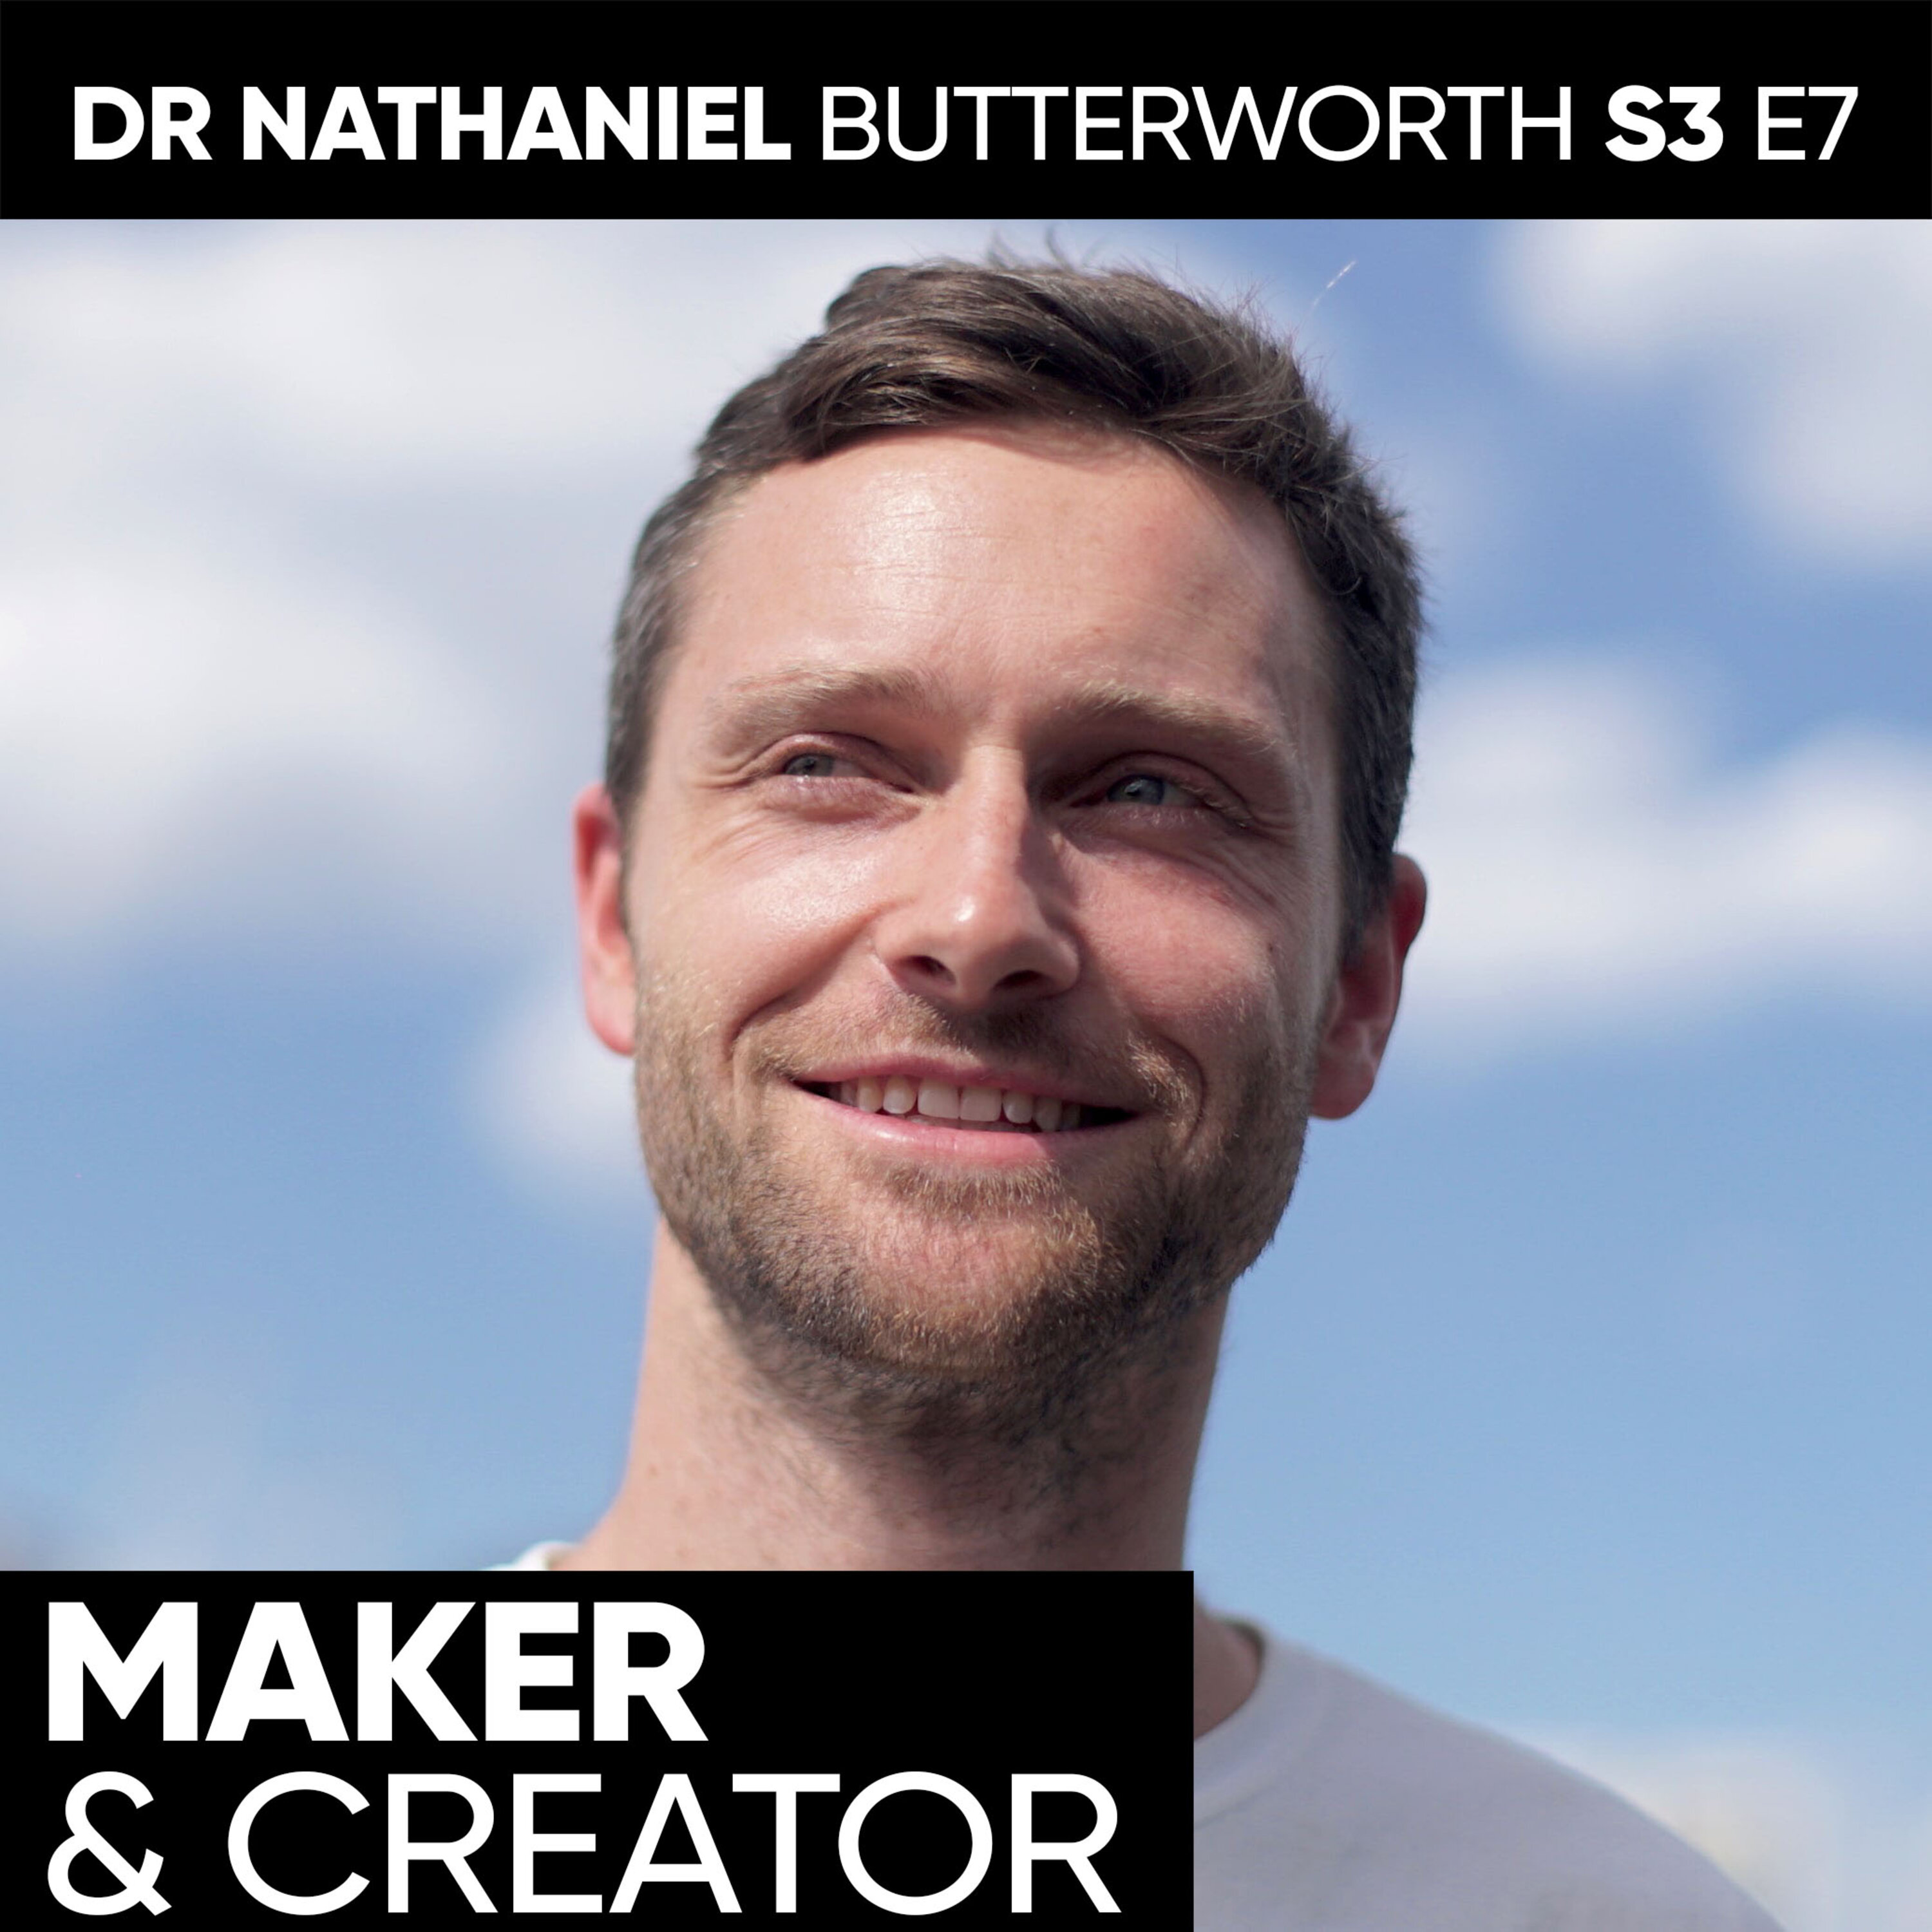 Creativity, science & space with Dr Nathaniel Butterworth